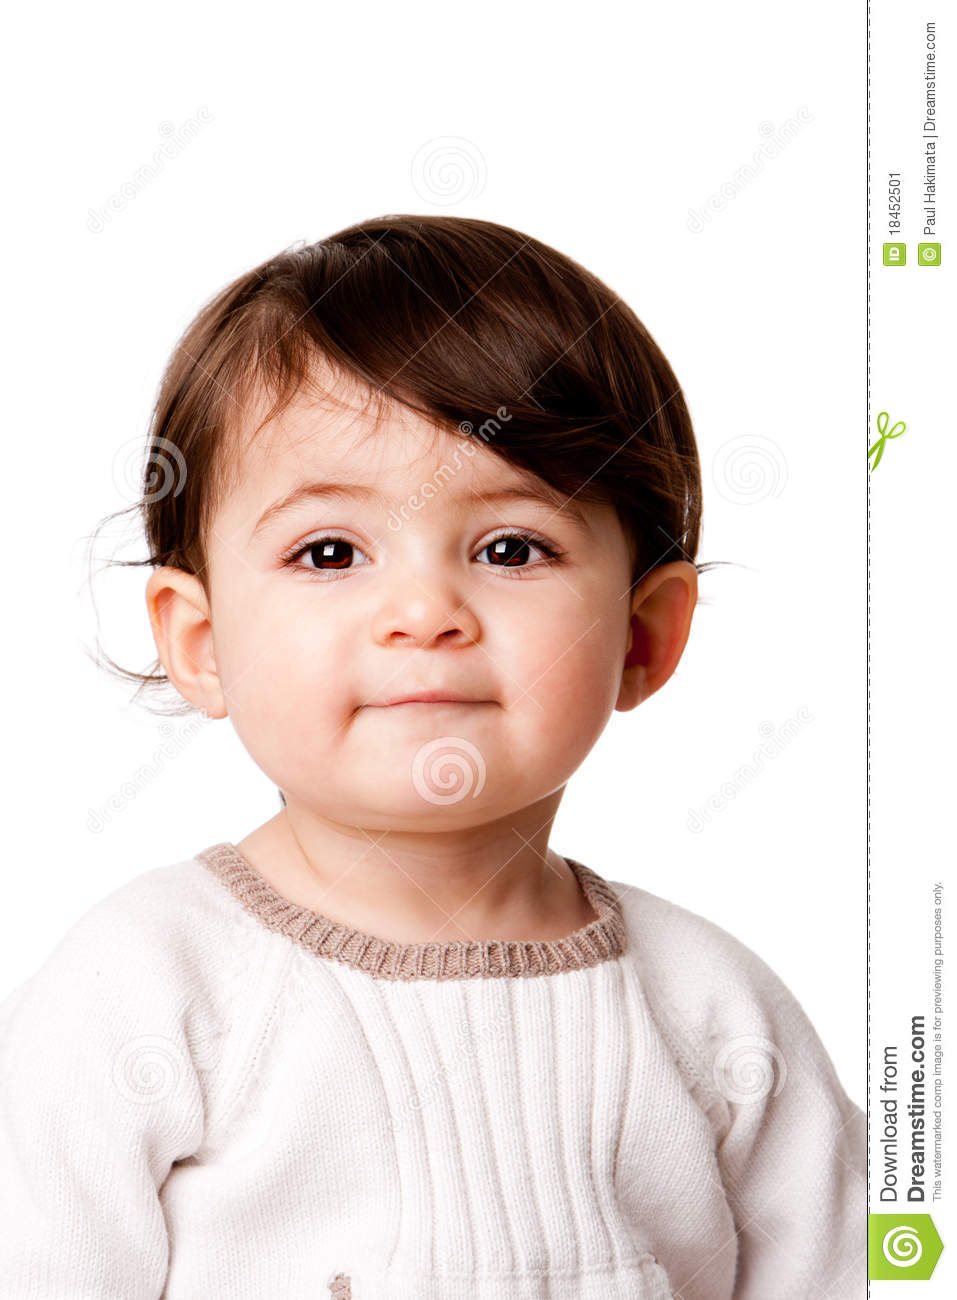 Cute Baby In Orange Shirt Puzzled Stock Photo ...